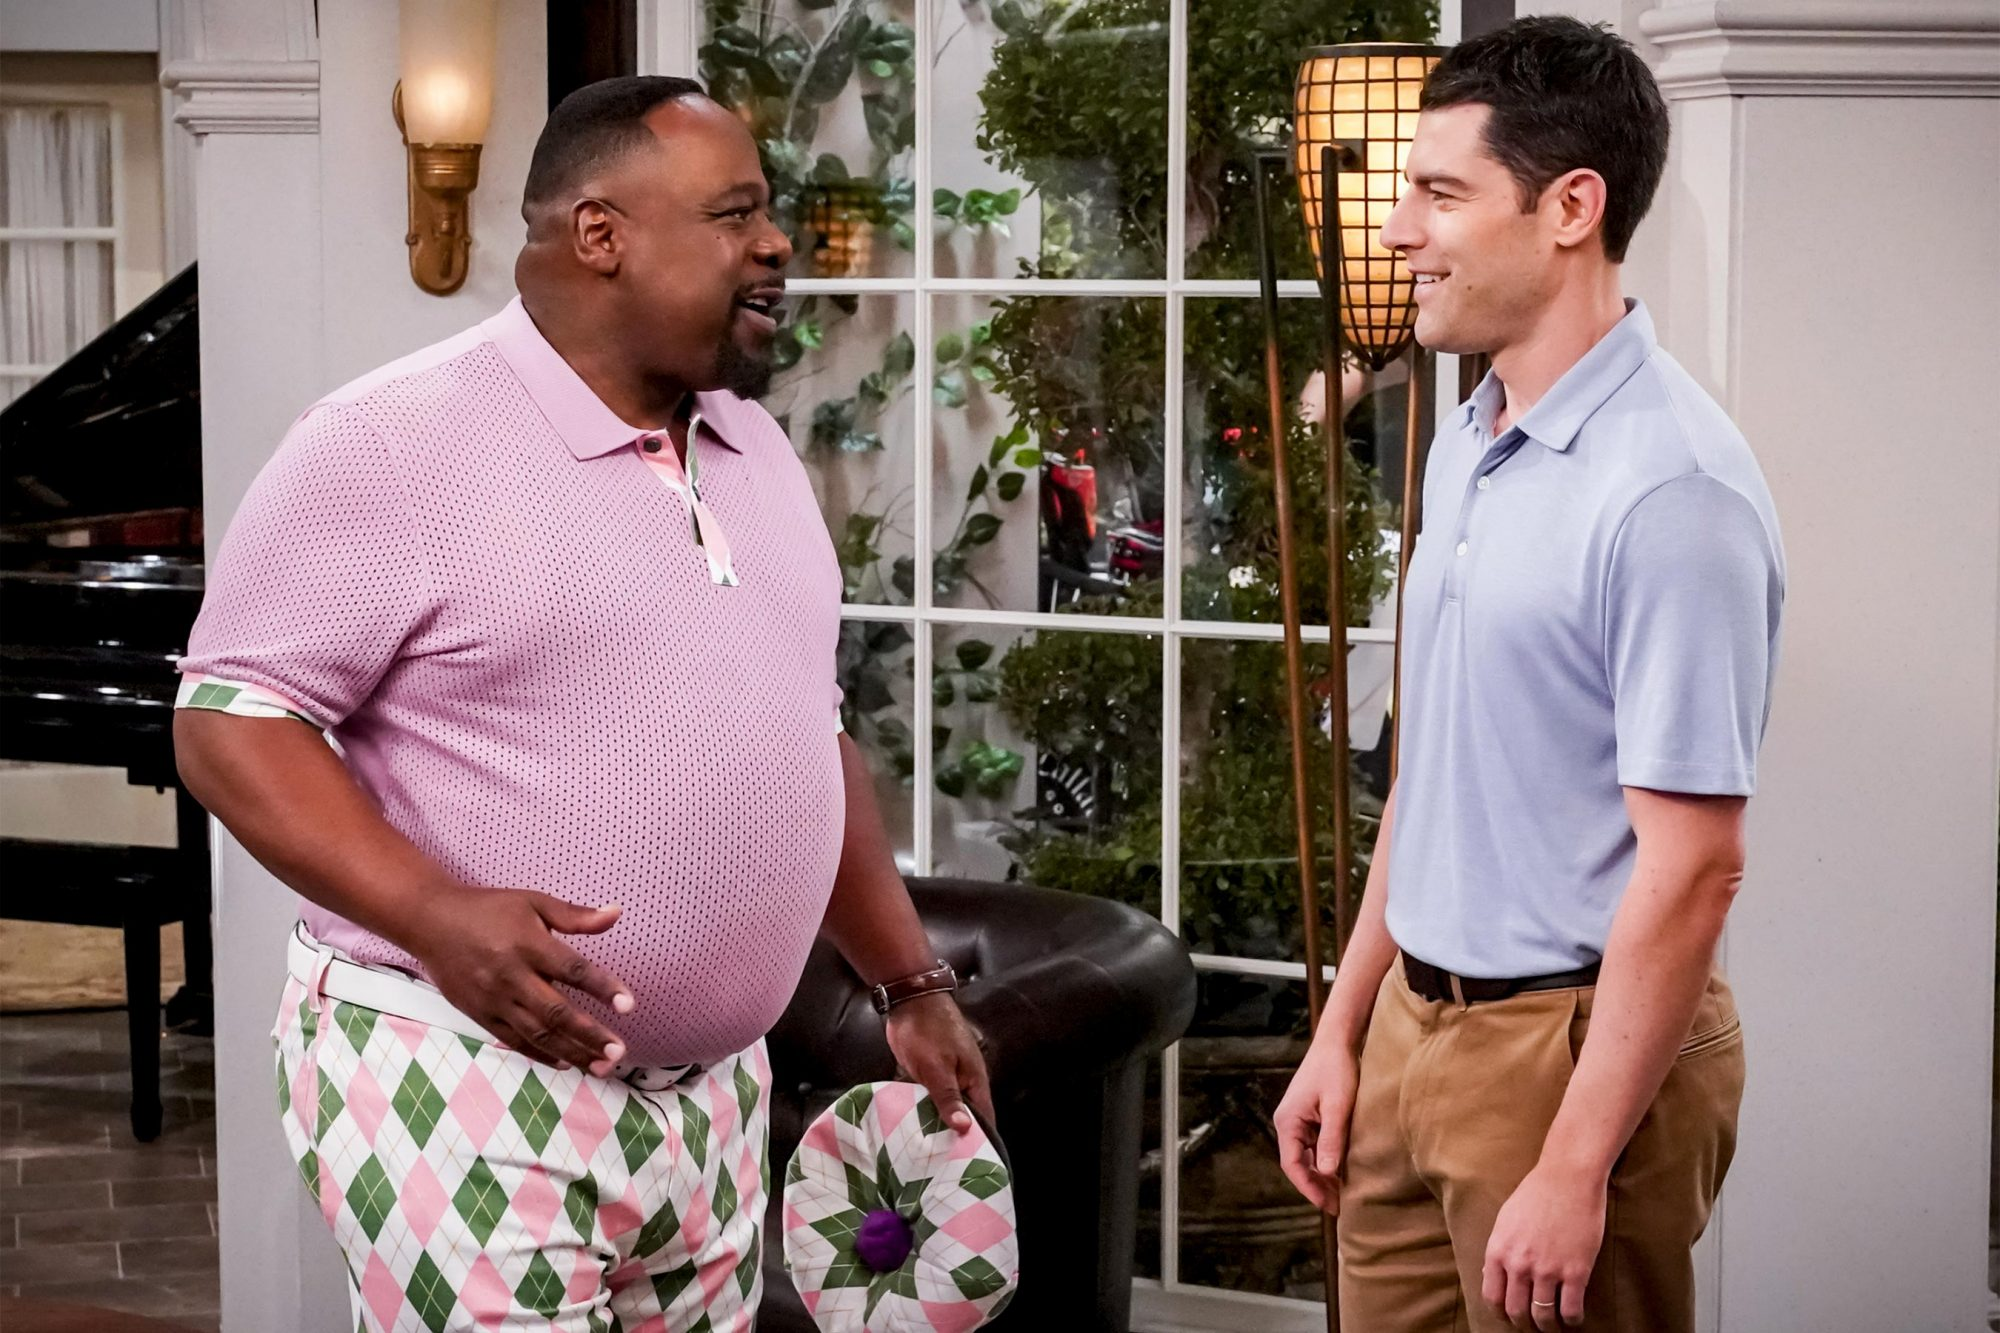 """""""Welcome to the Conversation"""" -- Pictured: Cedric the Entertainer (Calvin Butler) and Max Greenfield (Dave Johnson). Dave is thrilled when Calvin invites him golfing, confident that it represents progress in their relationship, but Calvin may have another motive. Also, Gemma and Tina team up to pull off an unforgettable surprise for Malcolm, Marty and Grover, on the first season finale of THE NEIGHBORHOOD, Monday, April 22 (8:00-8:30 PM, ET/PT) on the CBS Television Network. Photo: Monty Brinton/CBS ©2019 CBS Broadcasting, Inc. All Rights Reserved."""